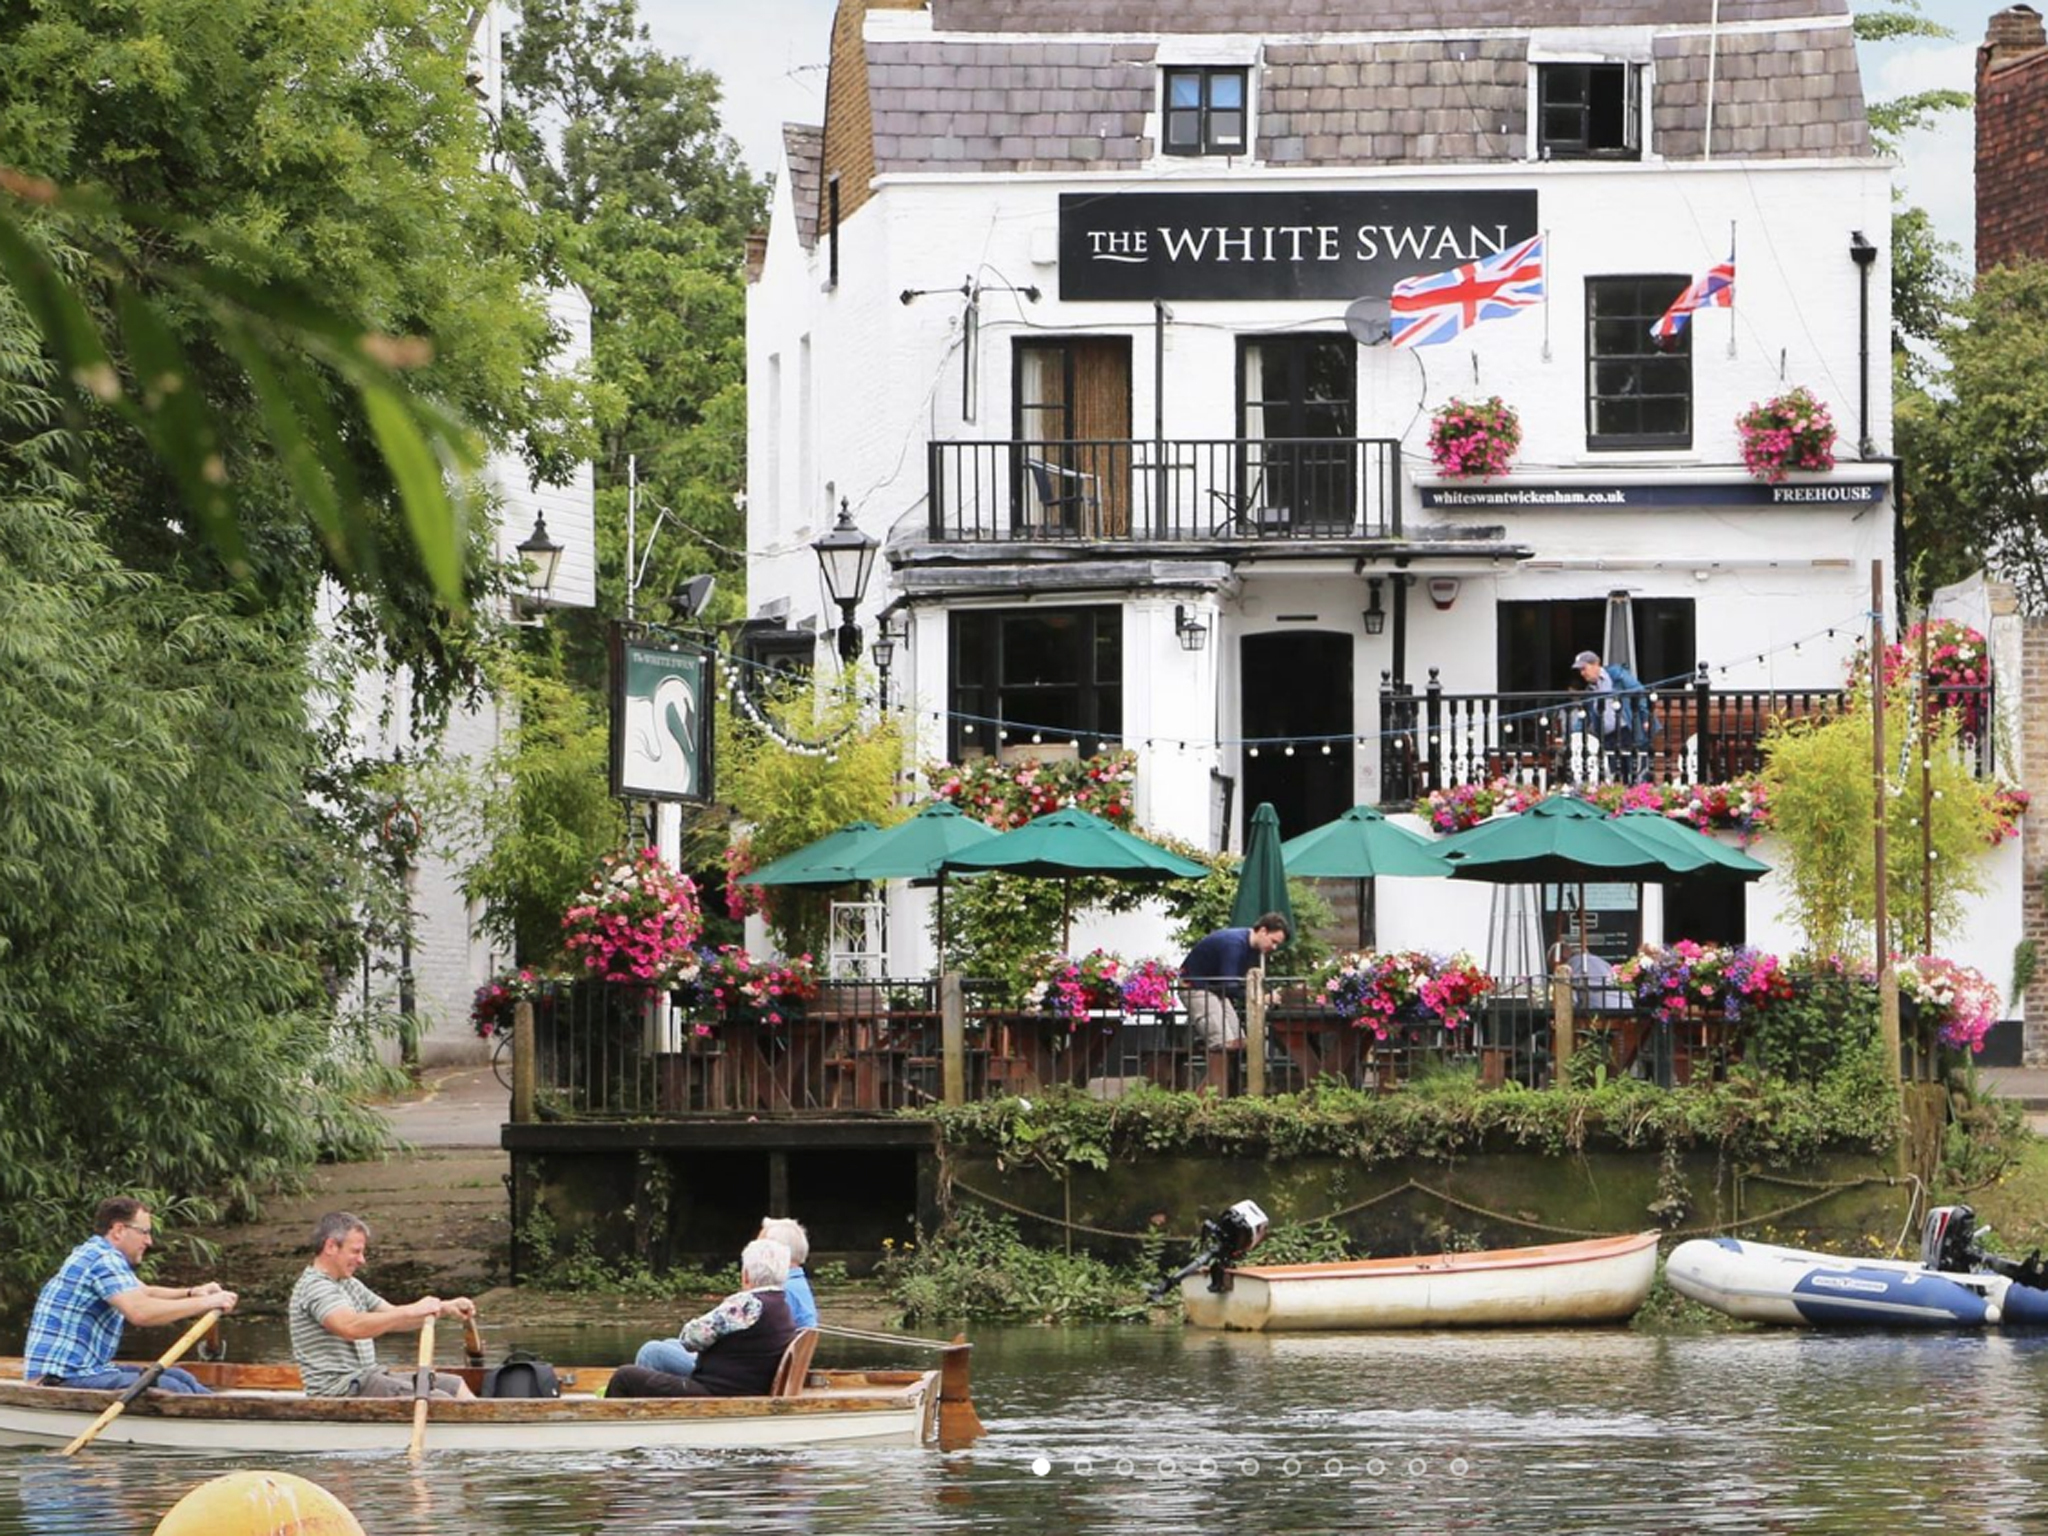 London's best riverside pubs, the white swan in Twickenham